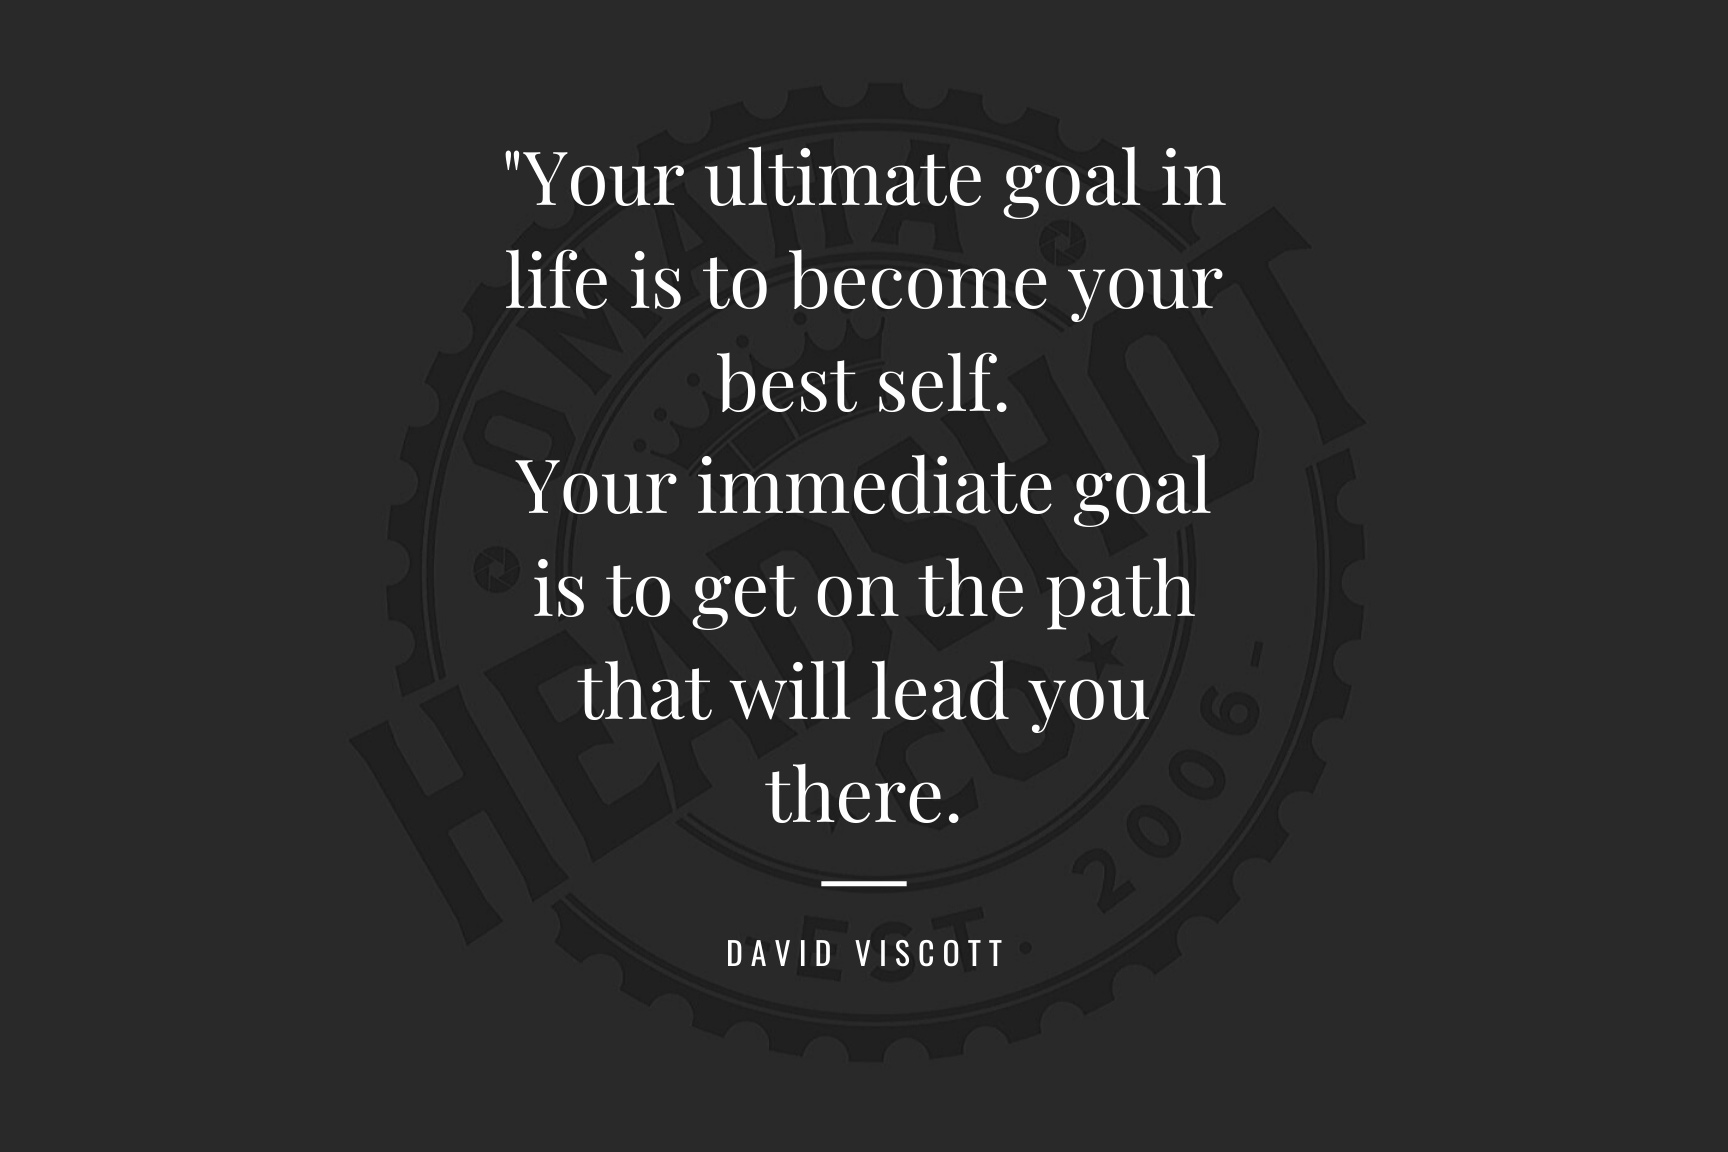 Your ultimate goal in life is to become your best self.